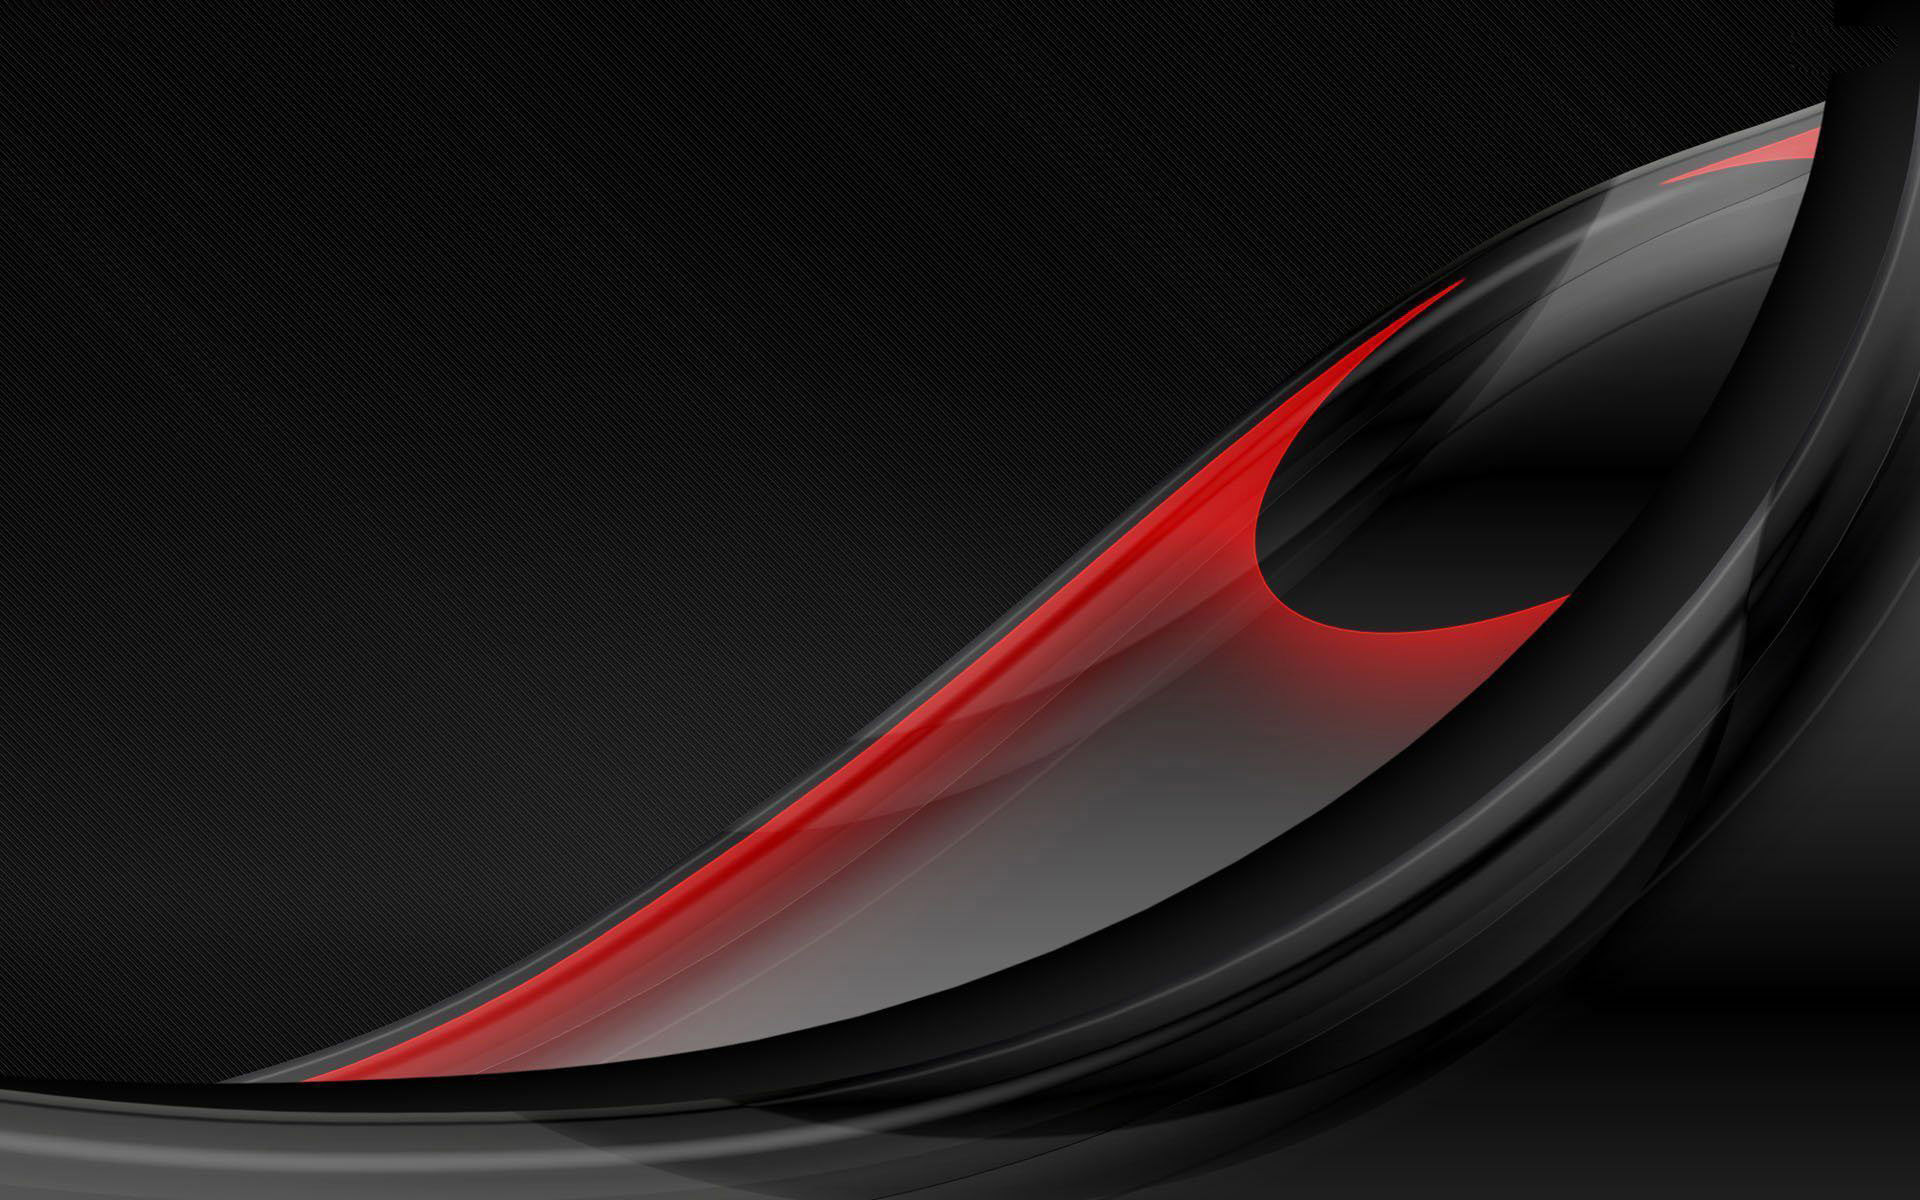 Black and red feather abstract wallpapers.